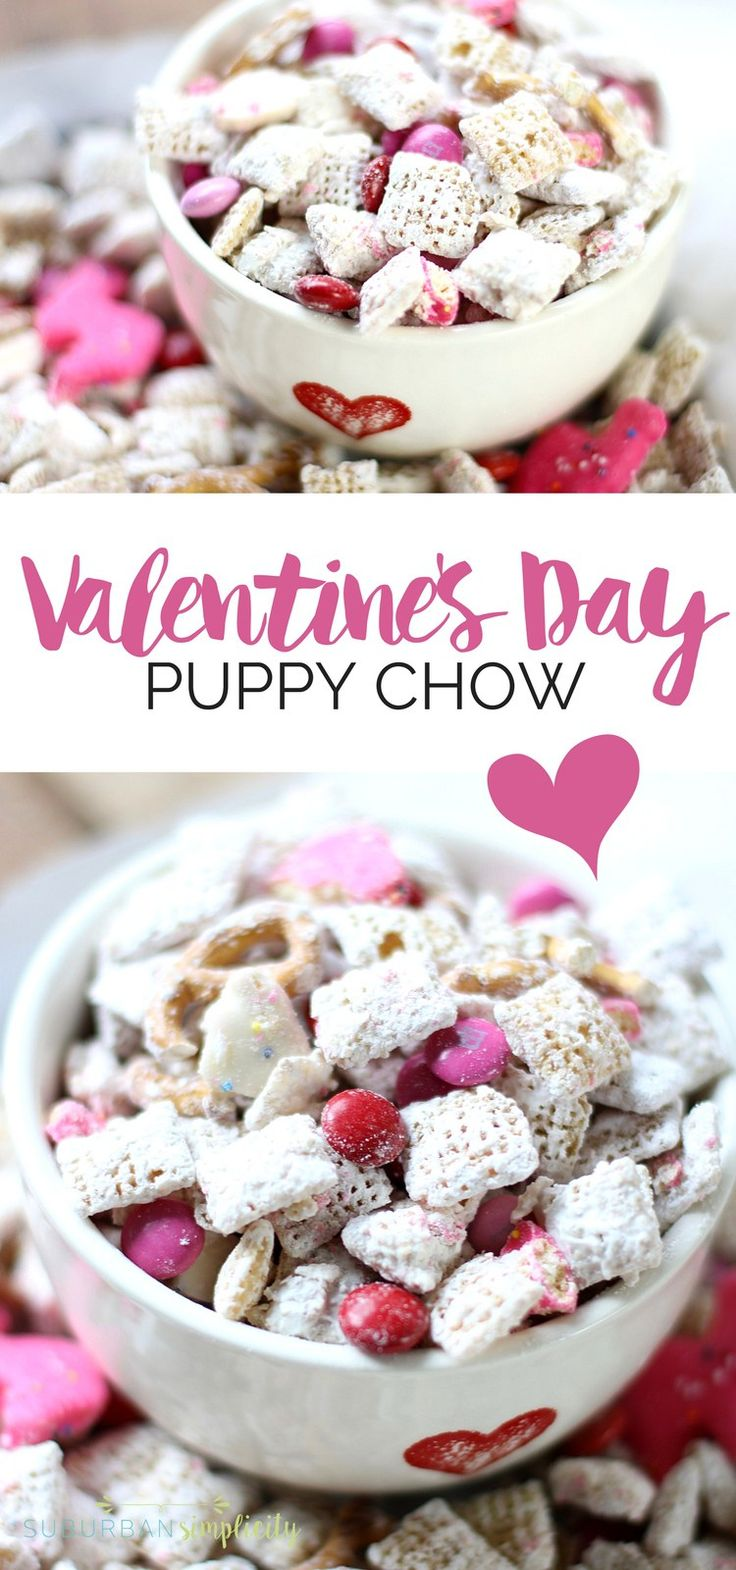 This Valentine's Day Puppy Chow recipe is the perfect treat for the holiday.  An amazing combination of salty and sweet that's kinda addictive!  With a few simple ingredients you can munch on this delicious dessert in minutes. #valentinesday #muddybuddies